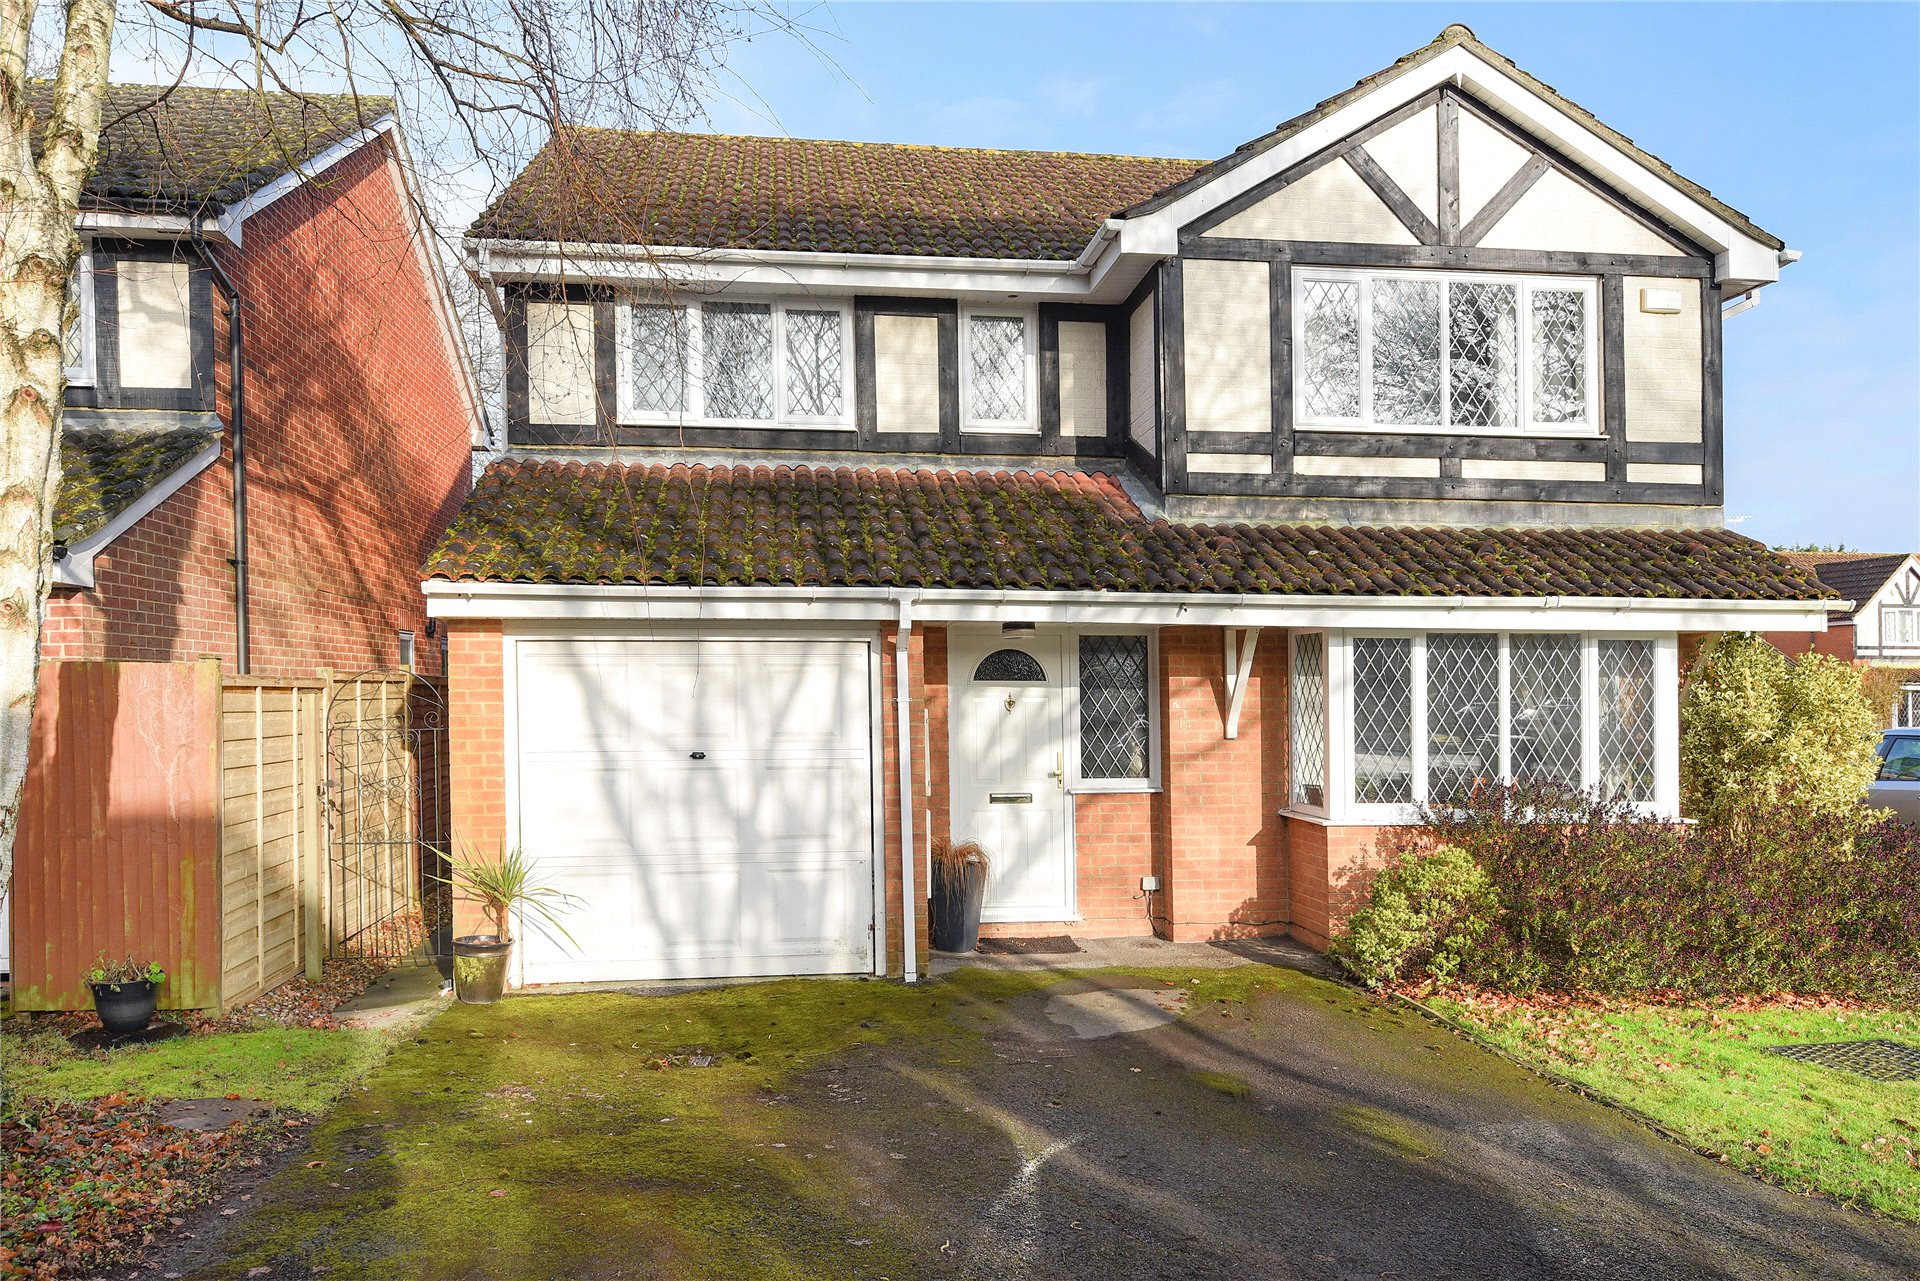 4 Bedrooms Detached House for sale in Charlton Close, Finchampstead, Wokingham, Berkshire, RG40